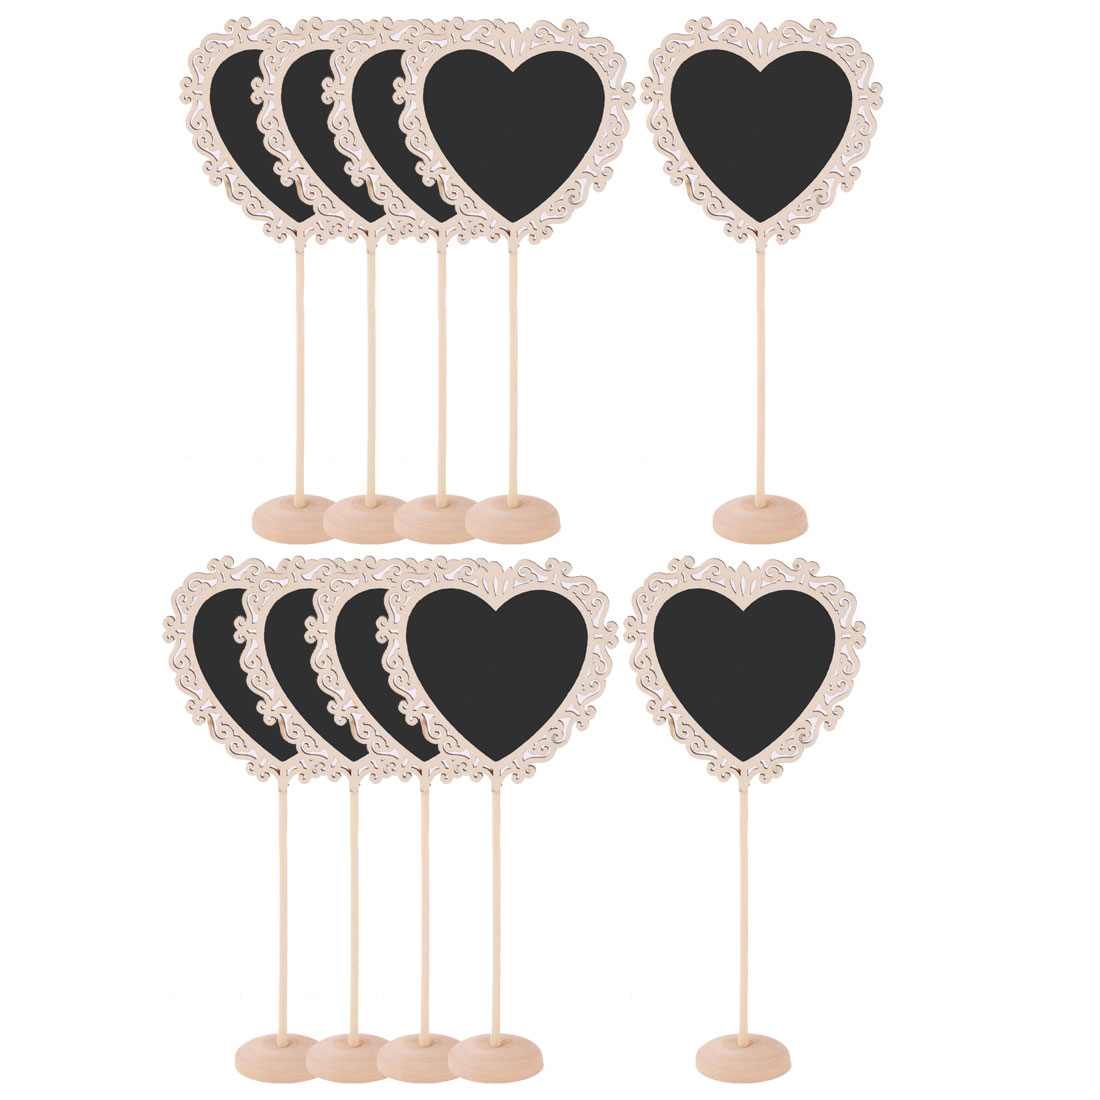 Wedding Wood Heart Shaped Message Standing Number Chalkboard Blackboard 10 Pcs